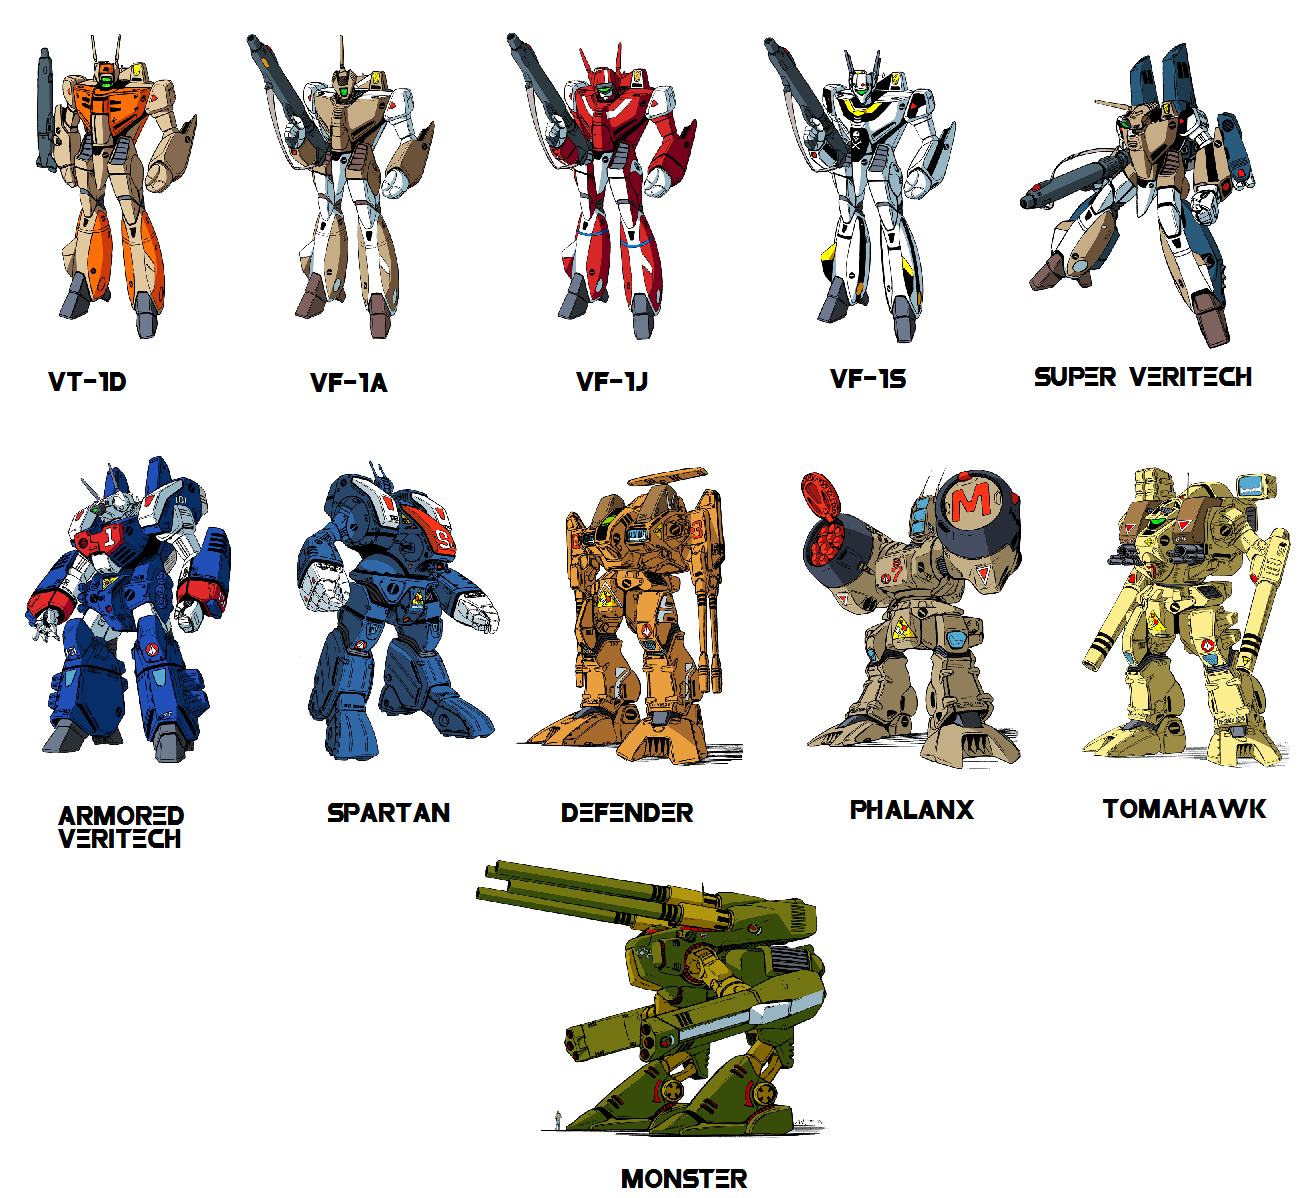 Robotech Technologies from W3 and by trivto on